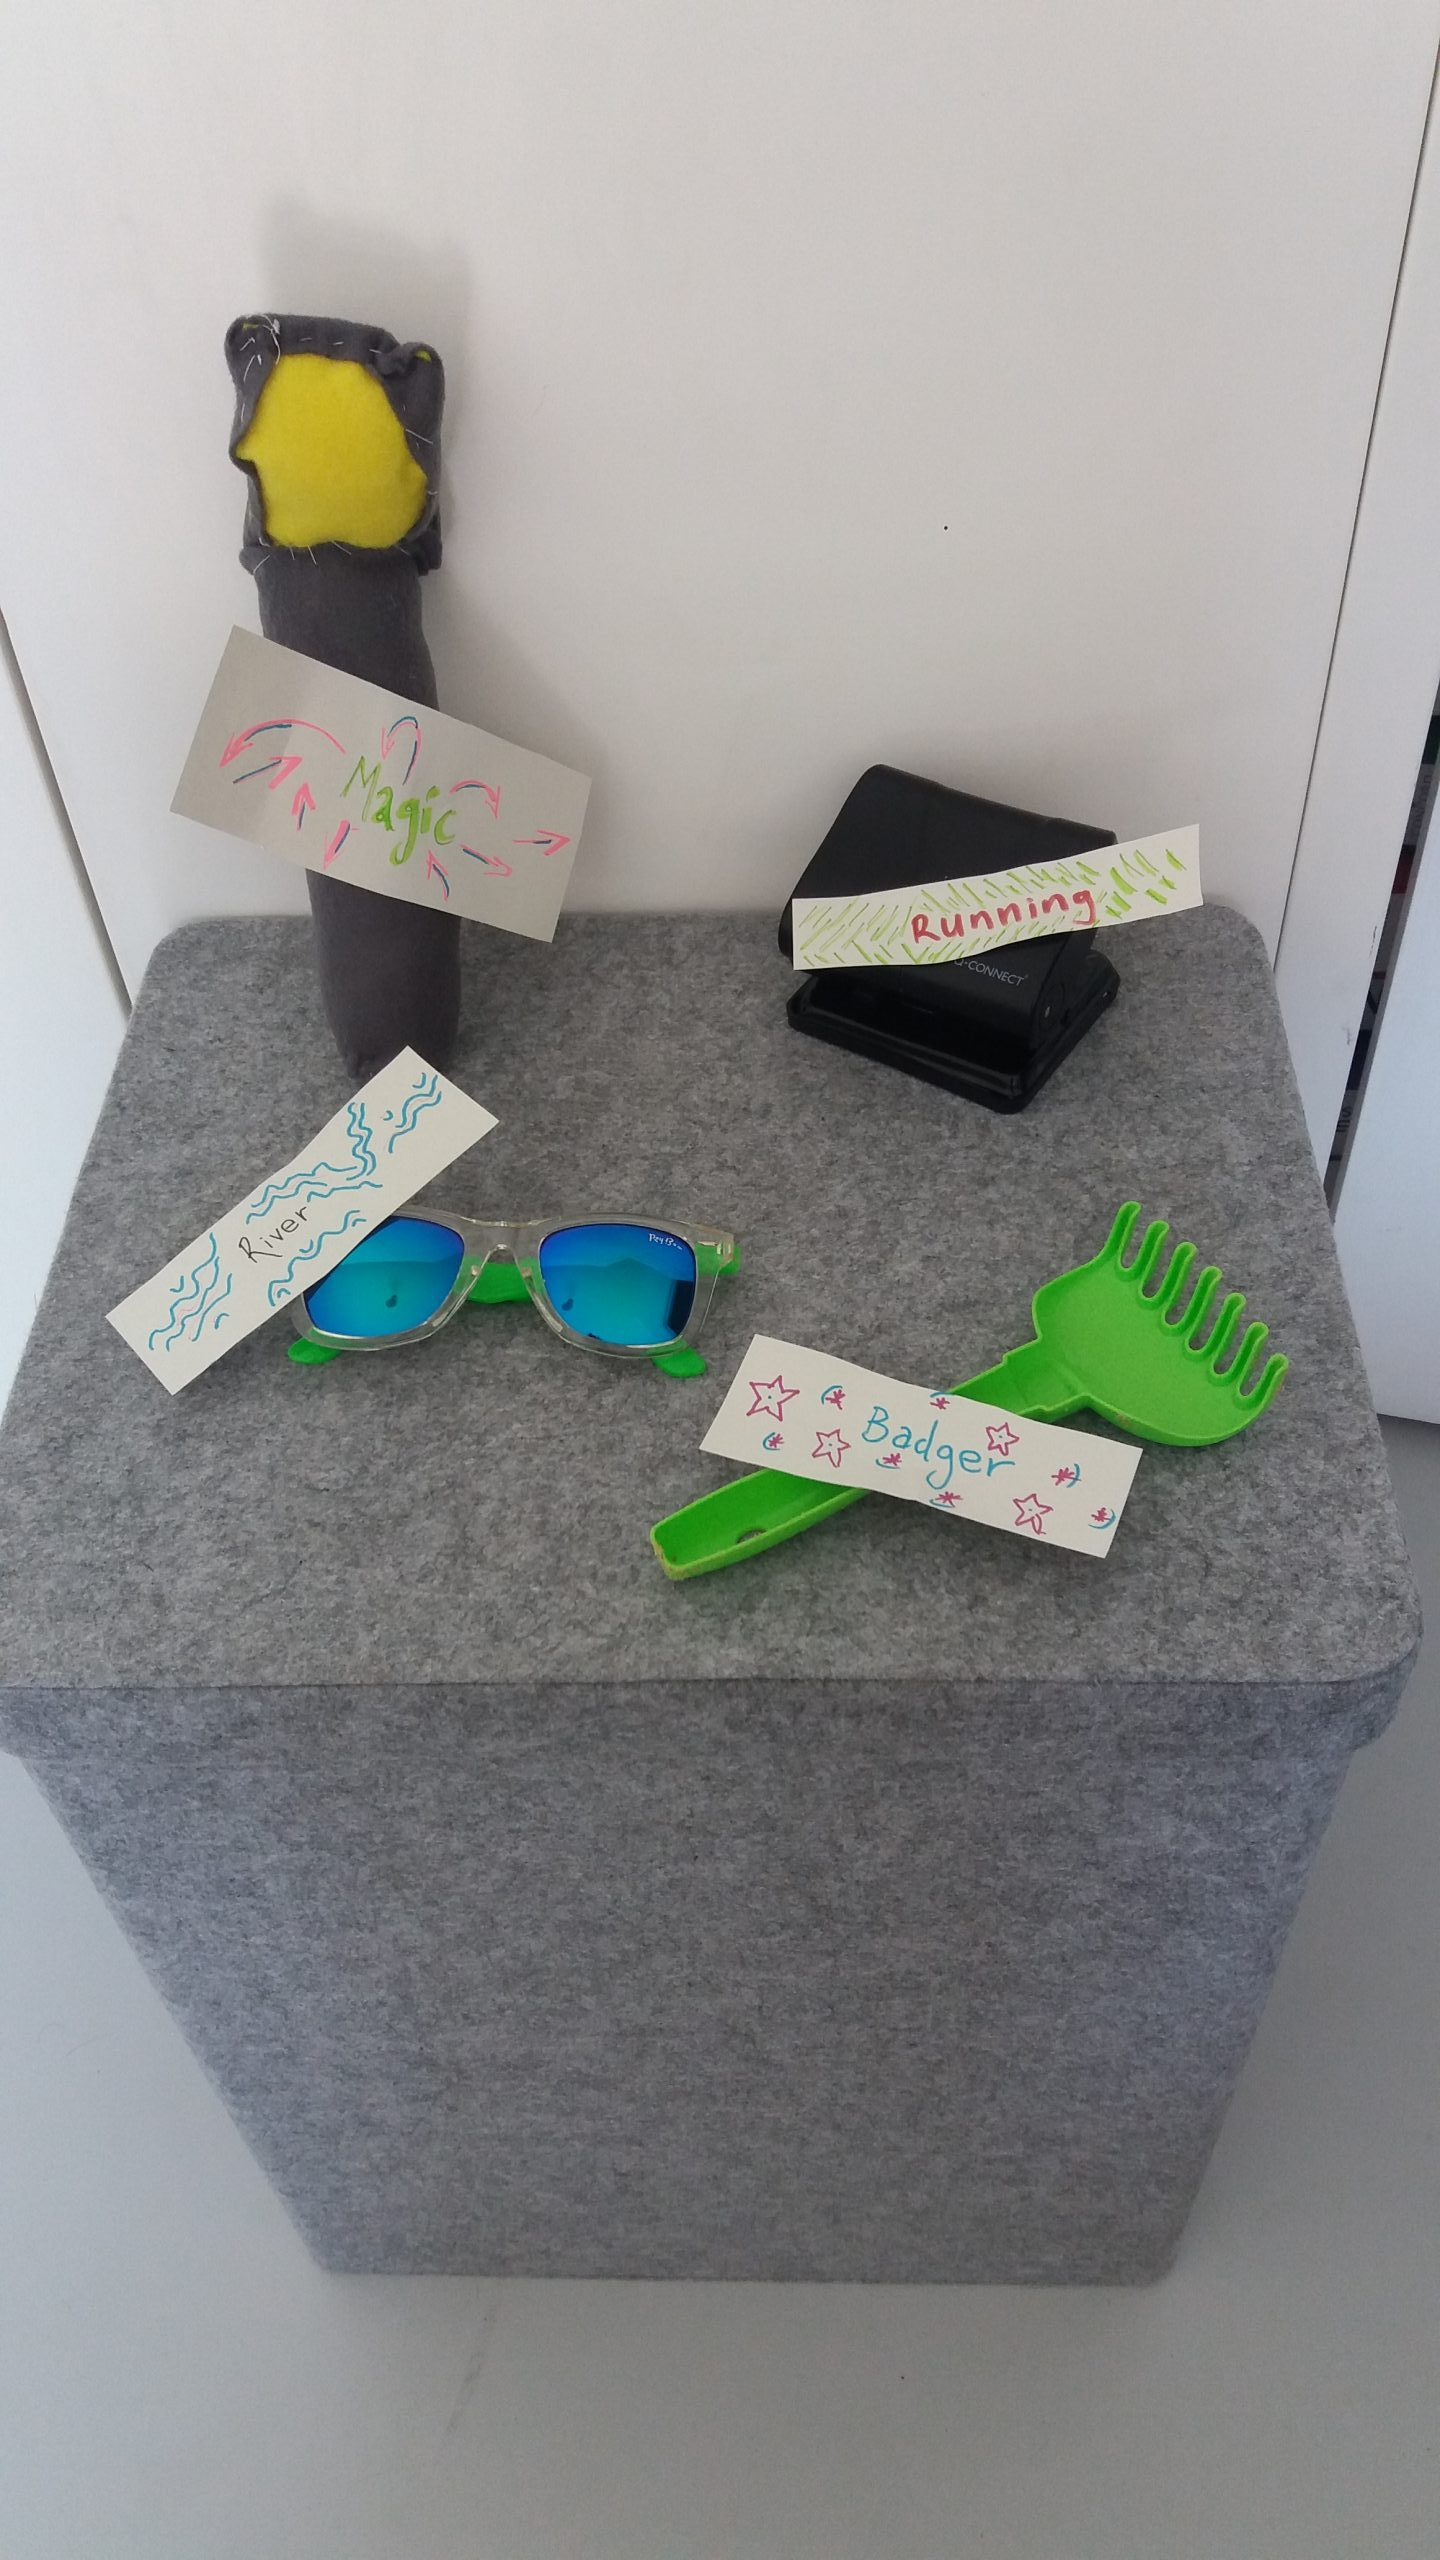 Photograph of a group of labelled objects on a grey wooden box. The objects include a felt lamppost labelled Magic, a small green plastic rake labelled Badger, a black plastic hole puncher labelled Running, Blue mirror lenses sunglasses labelled River